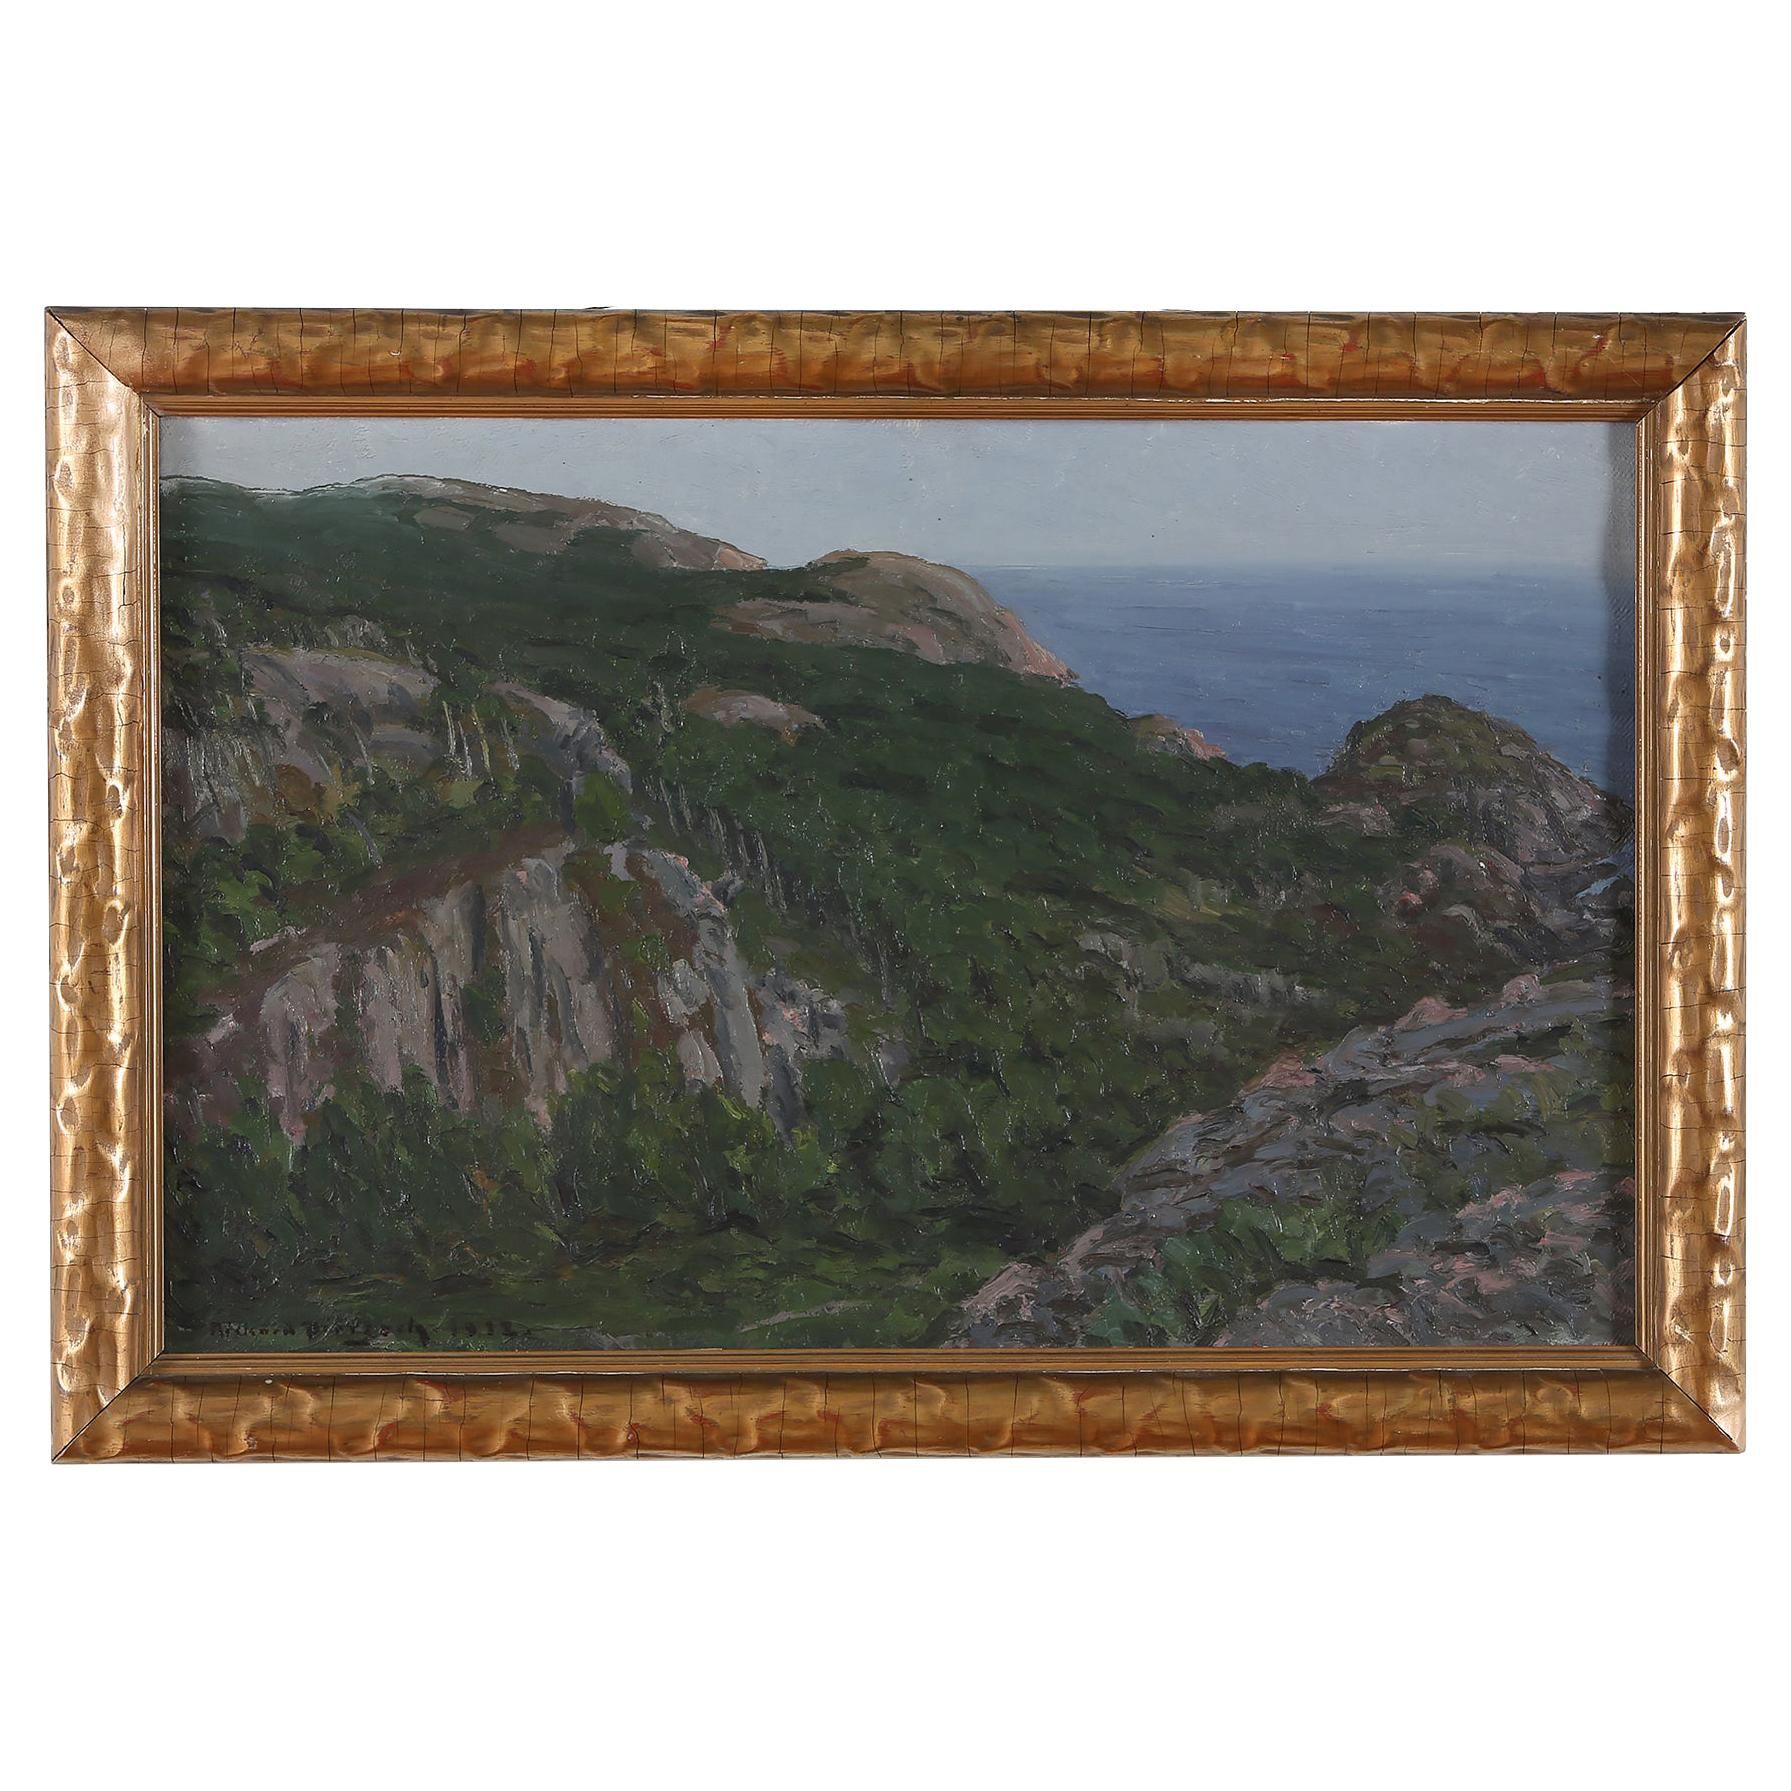 Giltwood Framed Oil / Canvas Painting